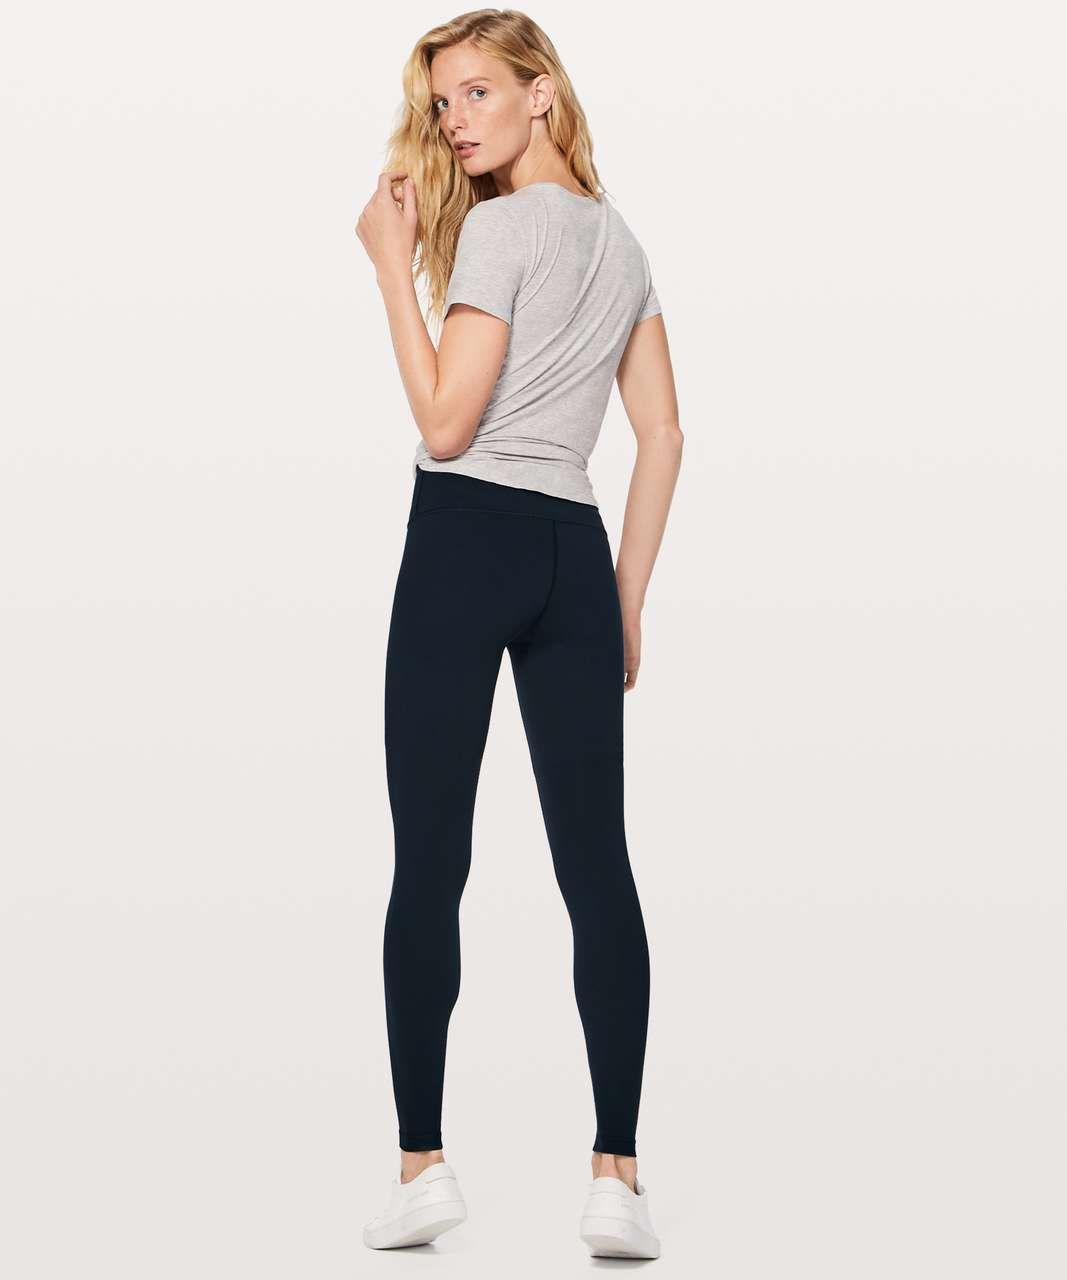 Lululemon Wunder Under Hi-Rise Tight (Tall) Full-On Luon Nocturnal Teal